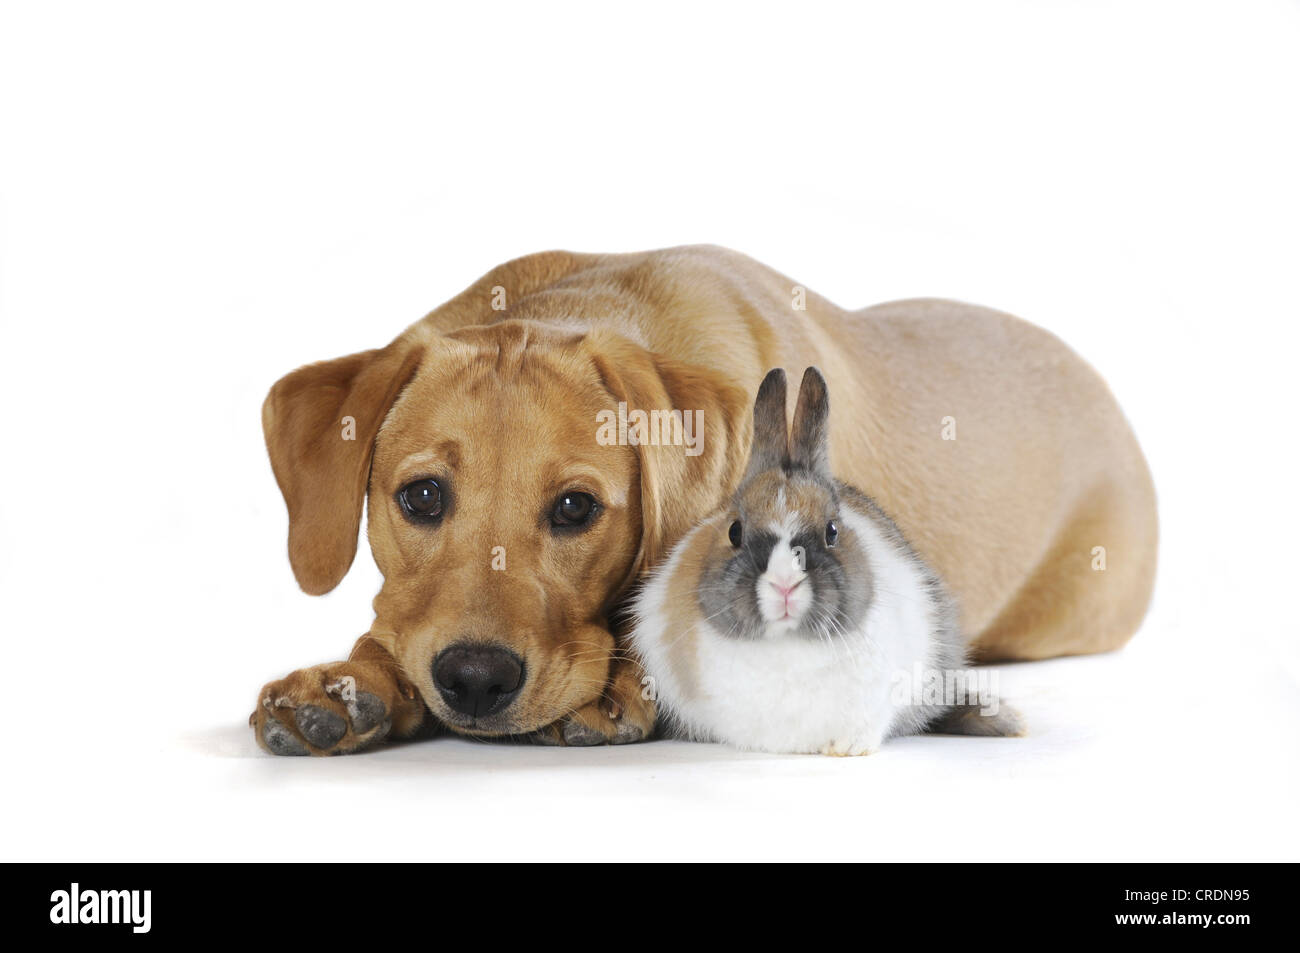 Labrador Retriever puppy, yellow coloured, and a mottled Dwarf Rabbit - Stock Image